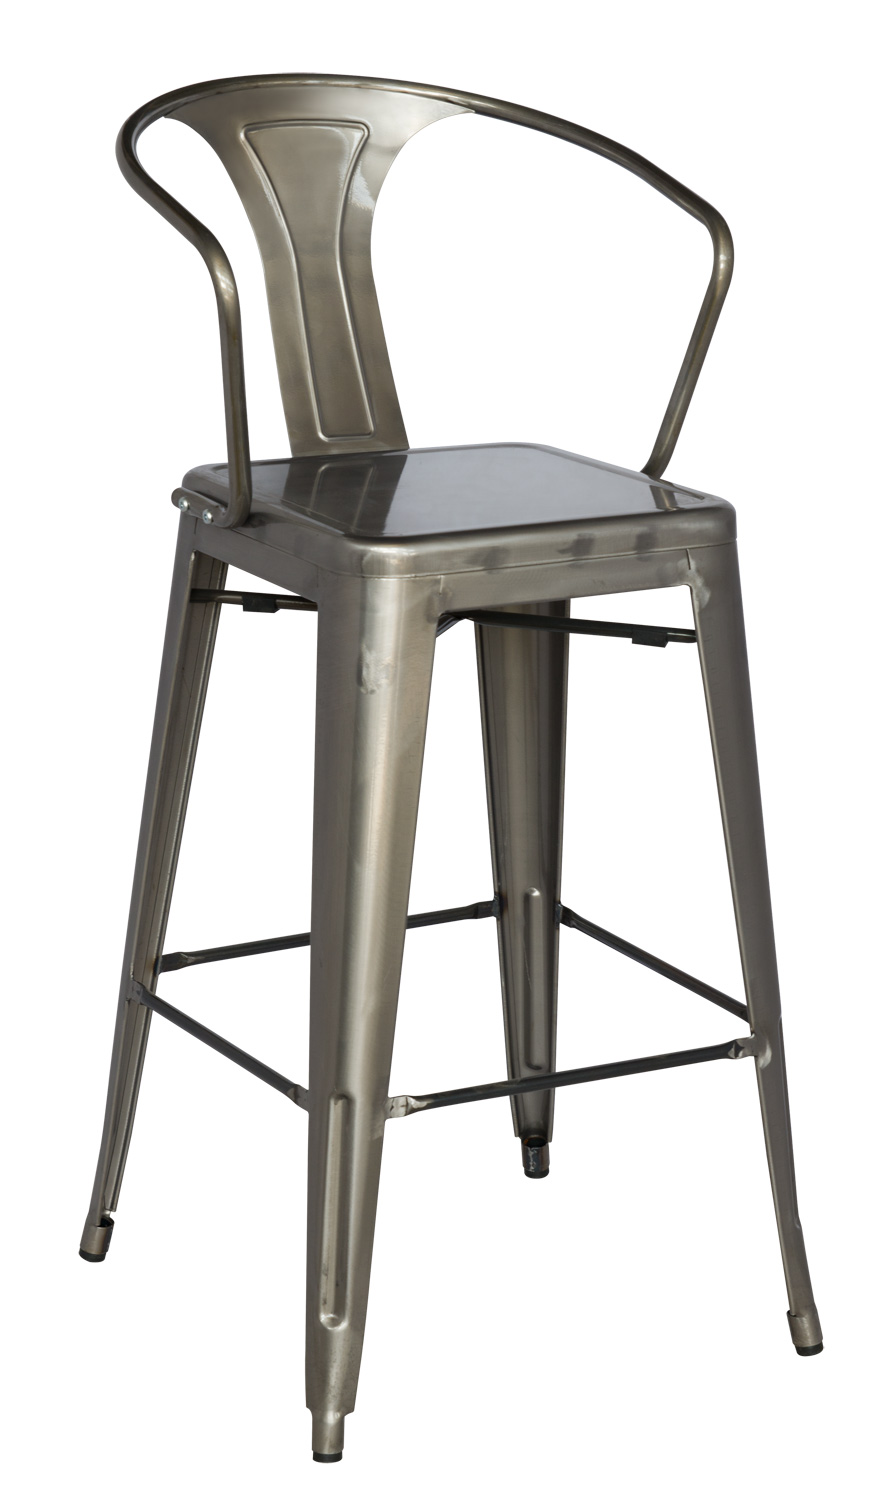 Chintaly Imports 8020 Cold Roll Steel Bar Stool - Gun Metal